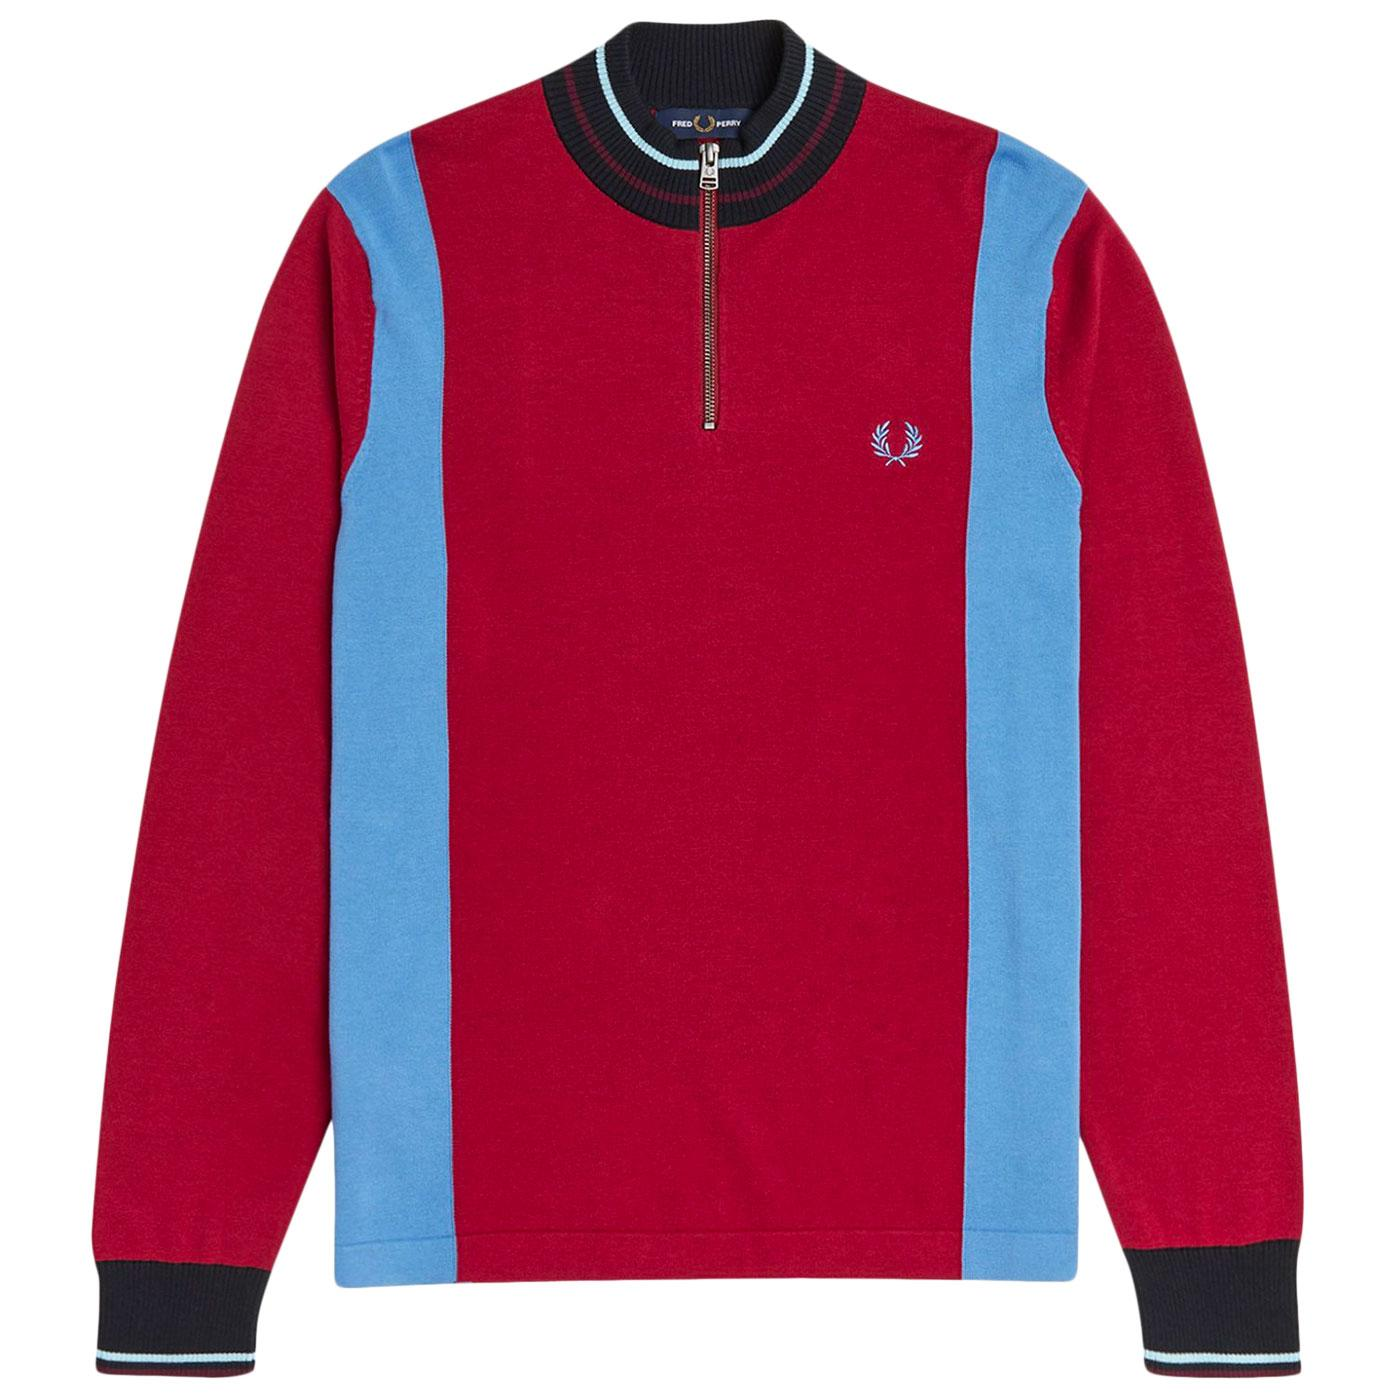 FRED PERRY K1527 Mod Knitted Cycling Top (Claret)